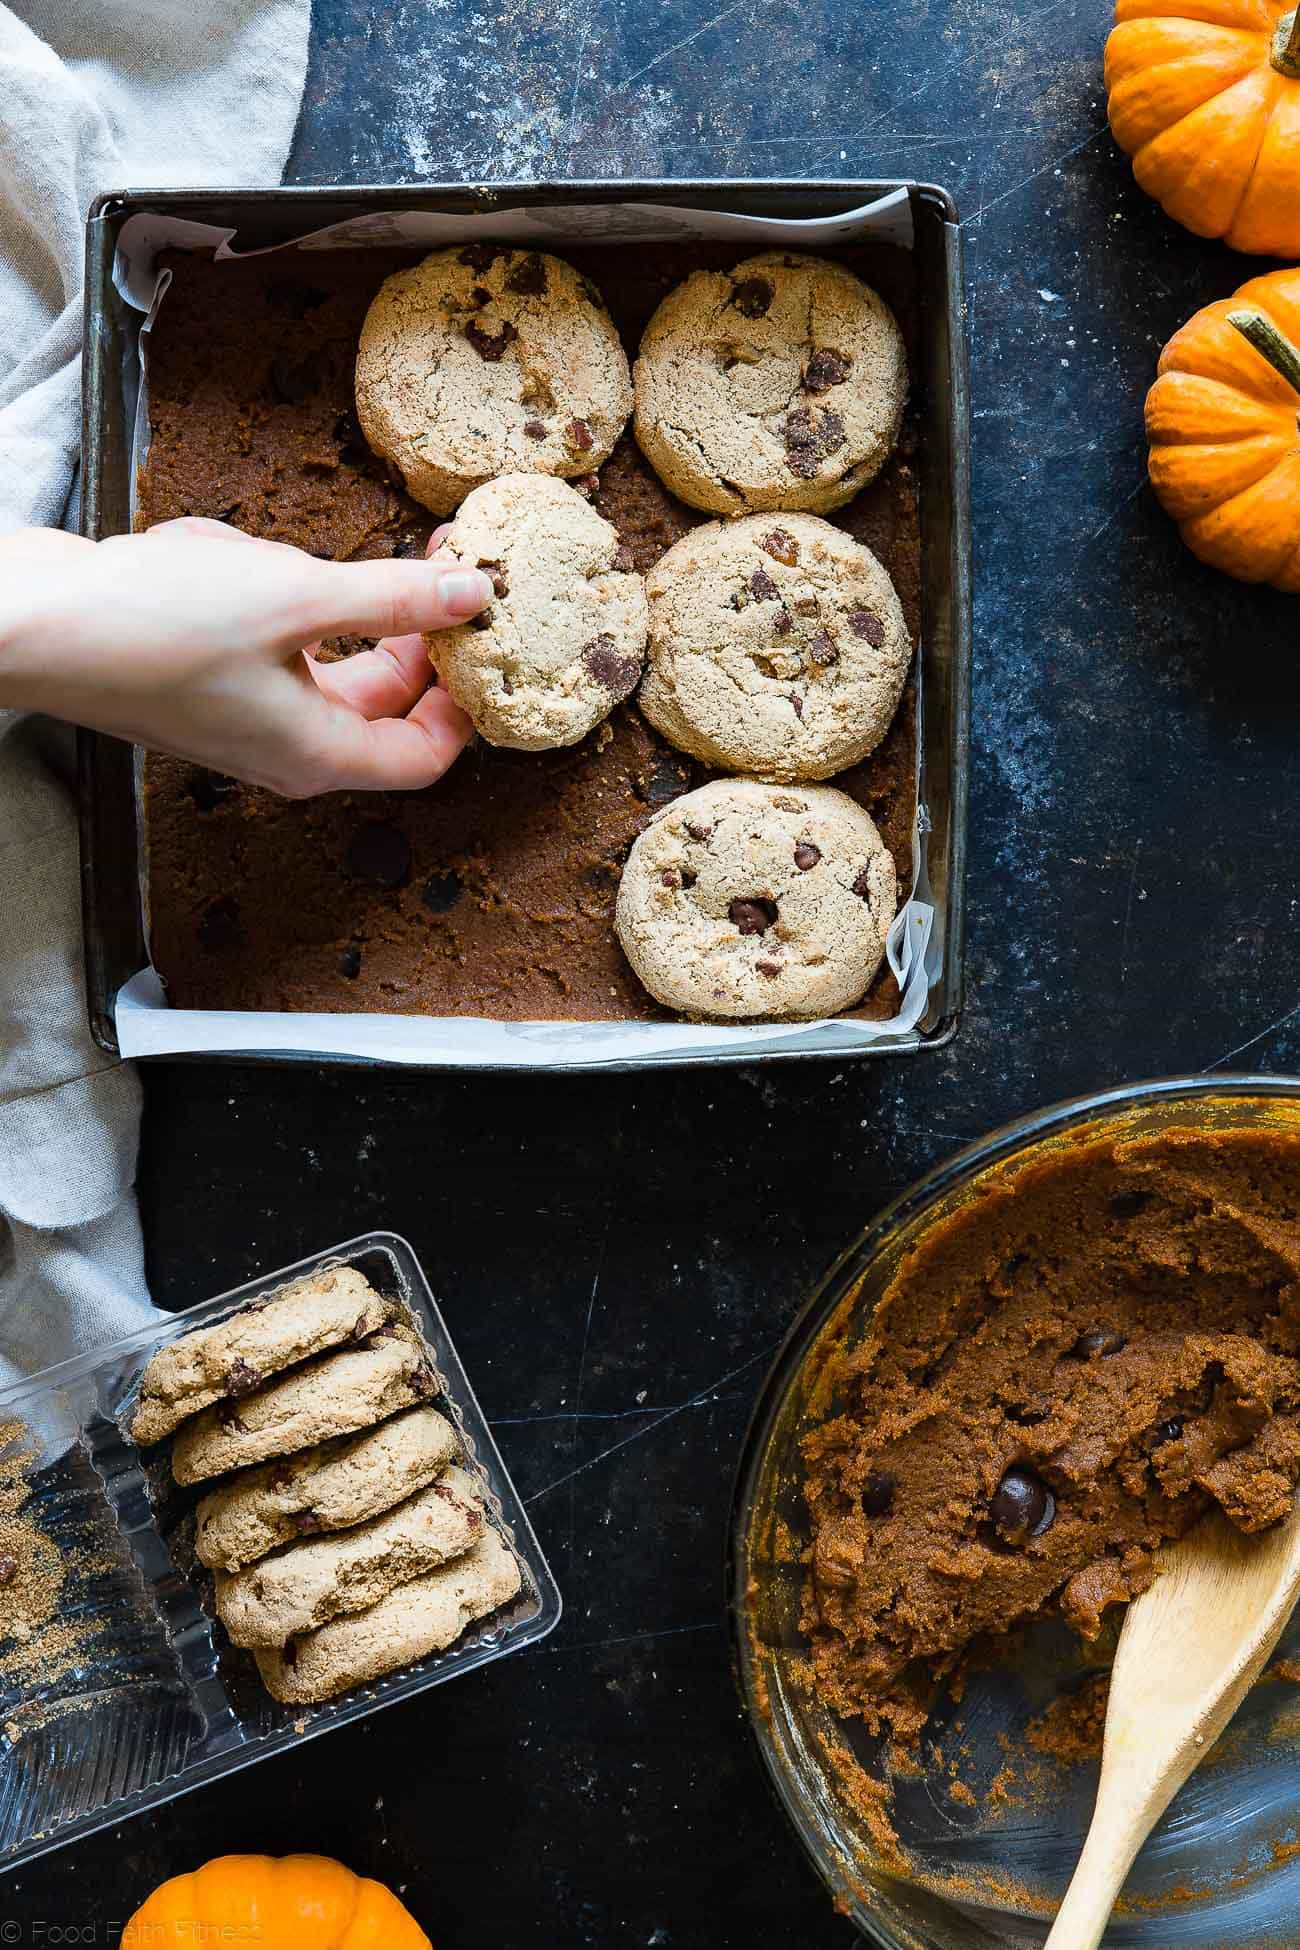 Cookie Stuffed Gluten Free Pumpkin Blondies -Cookies are baked right inside these healthier pumpkin brookies! They're so dense and chewy you'll never know they're gluten and dairy free! | Foodfaithfitness.com | @FoodFaithFit